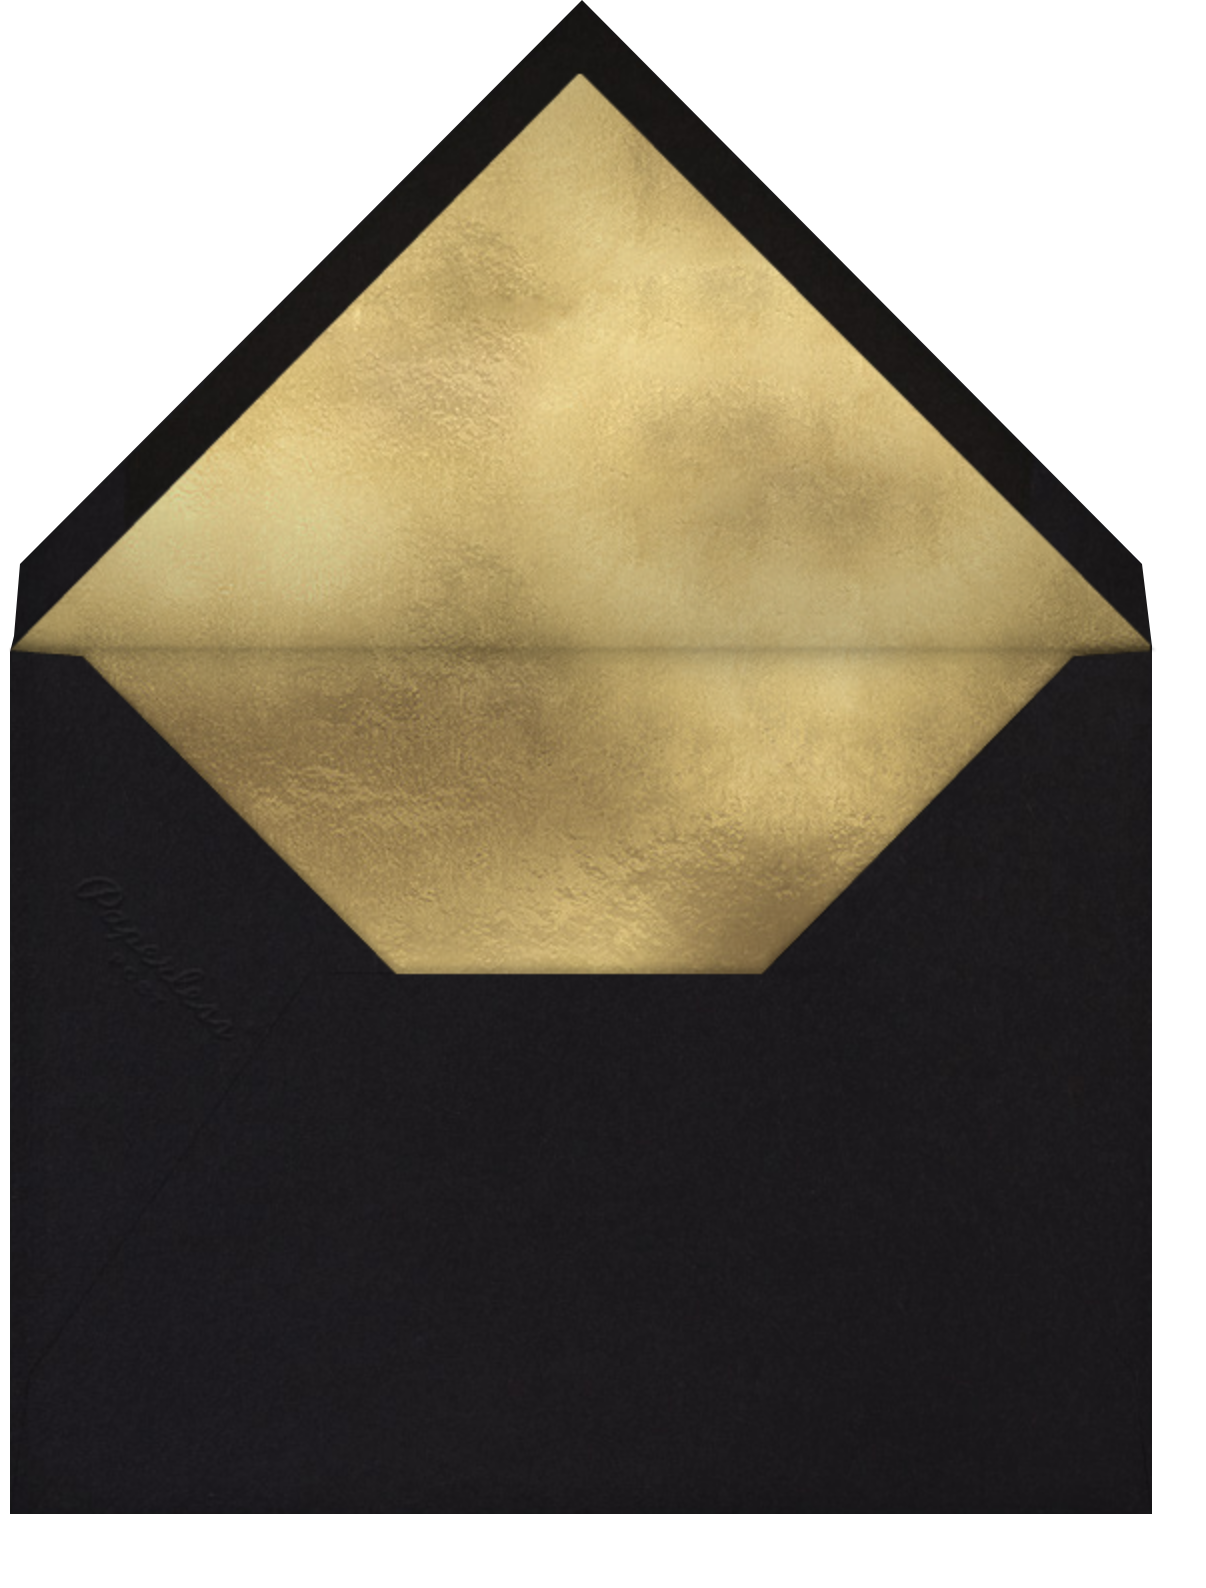 Streamer Shapes (Photo) - White/Gold - Paperless Post - Graduation party - envelope back